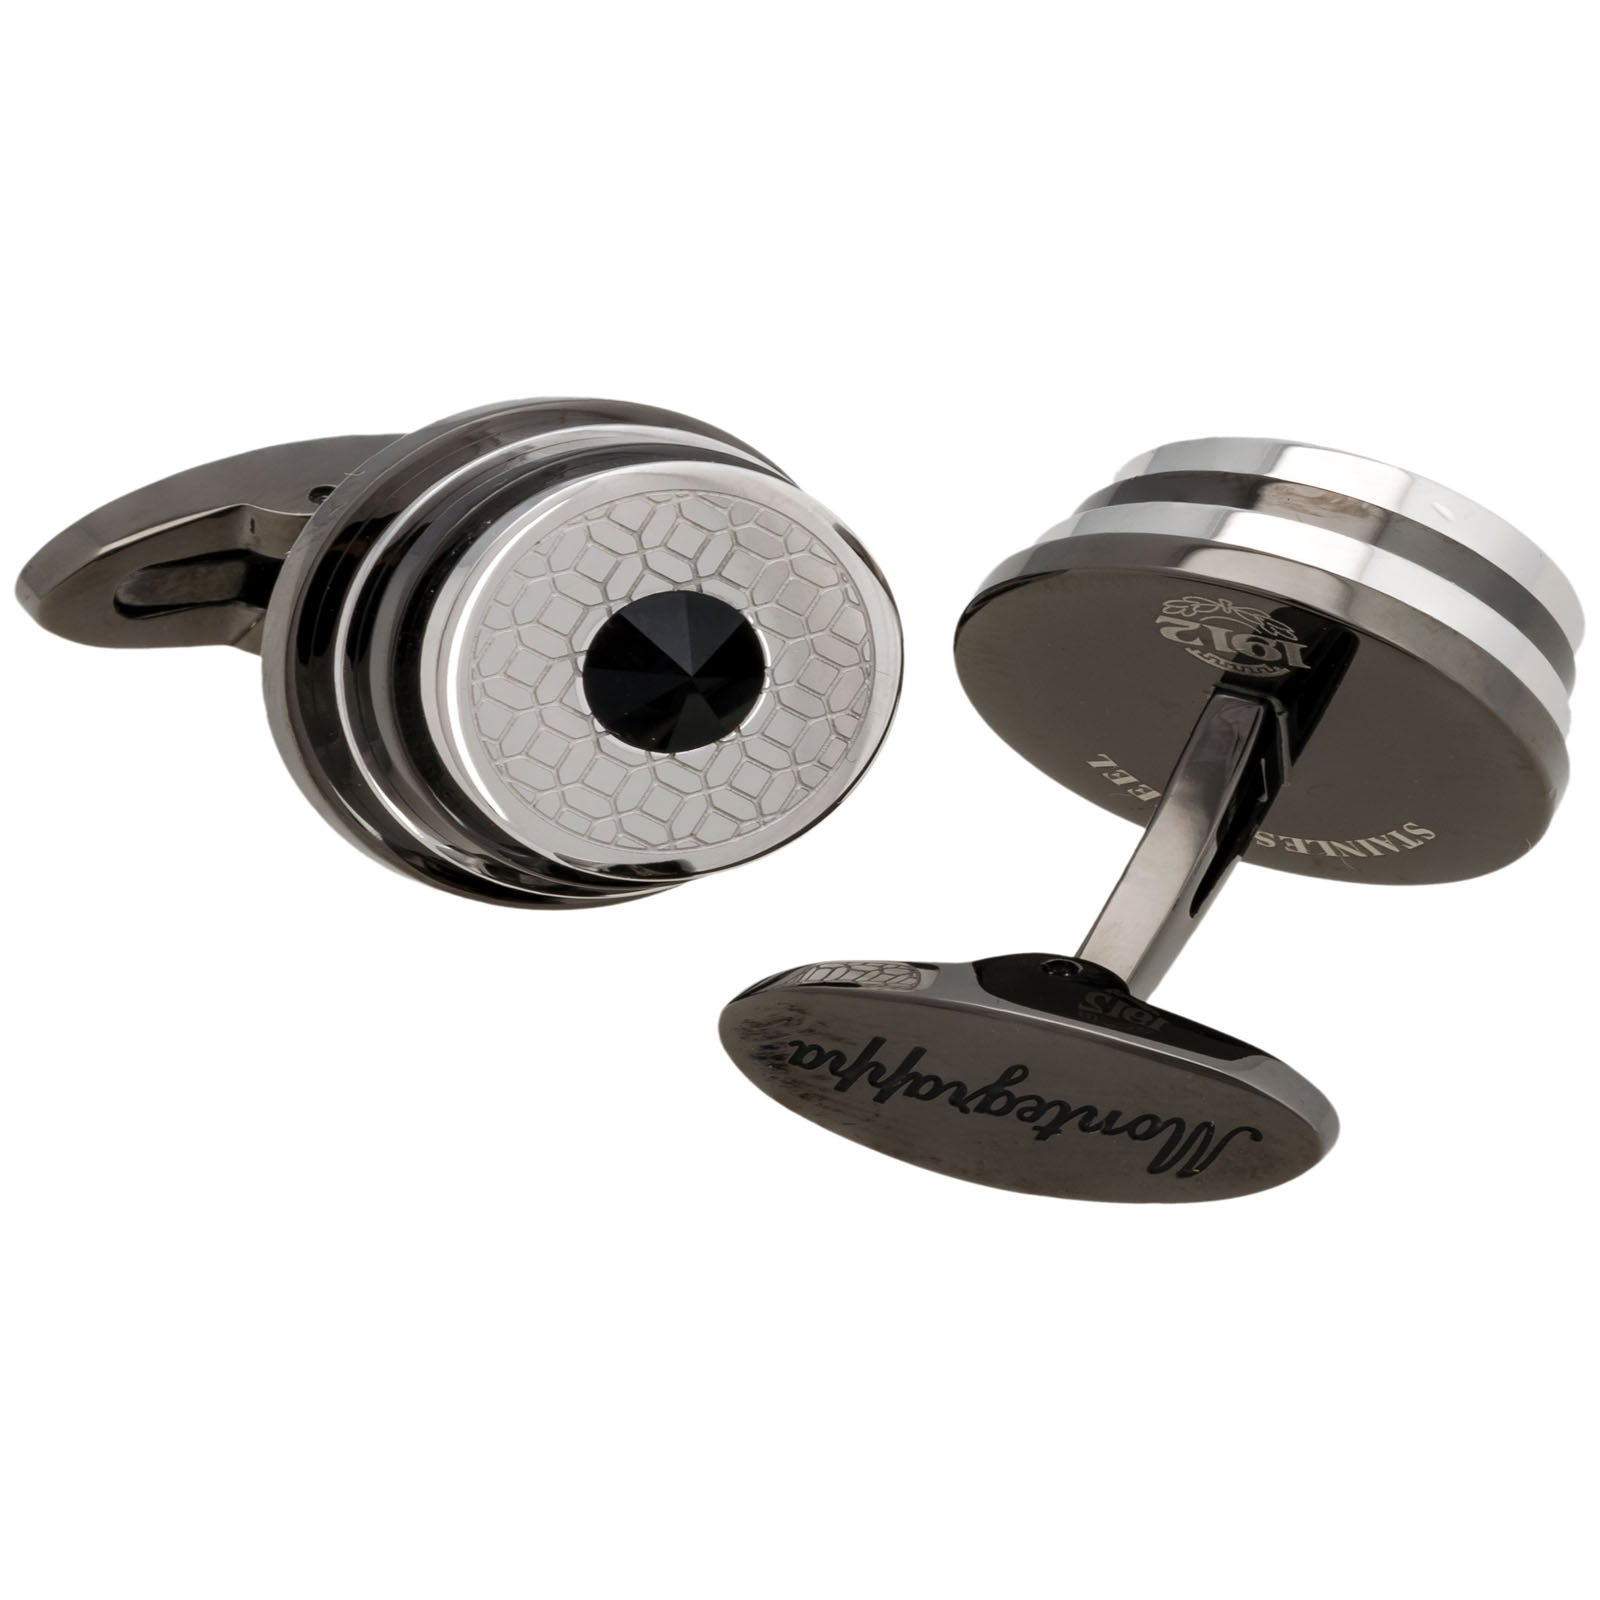 Stairway Stainless Gunmetal PVD Cufflinks IDSPCLPL MADE IN ITALY-Luxury Watches | Mens And Ladies Luxury Watches | Upscale Time